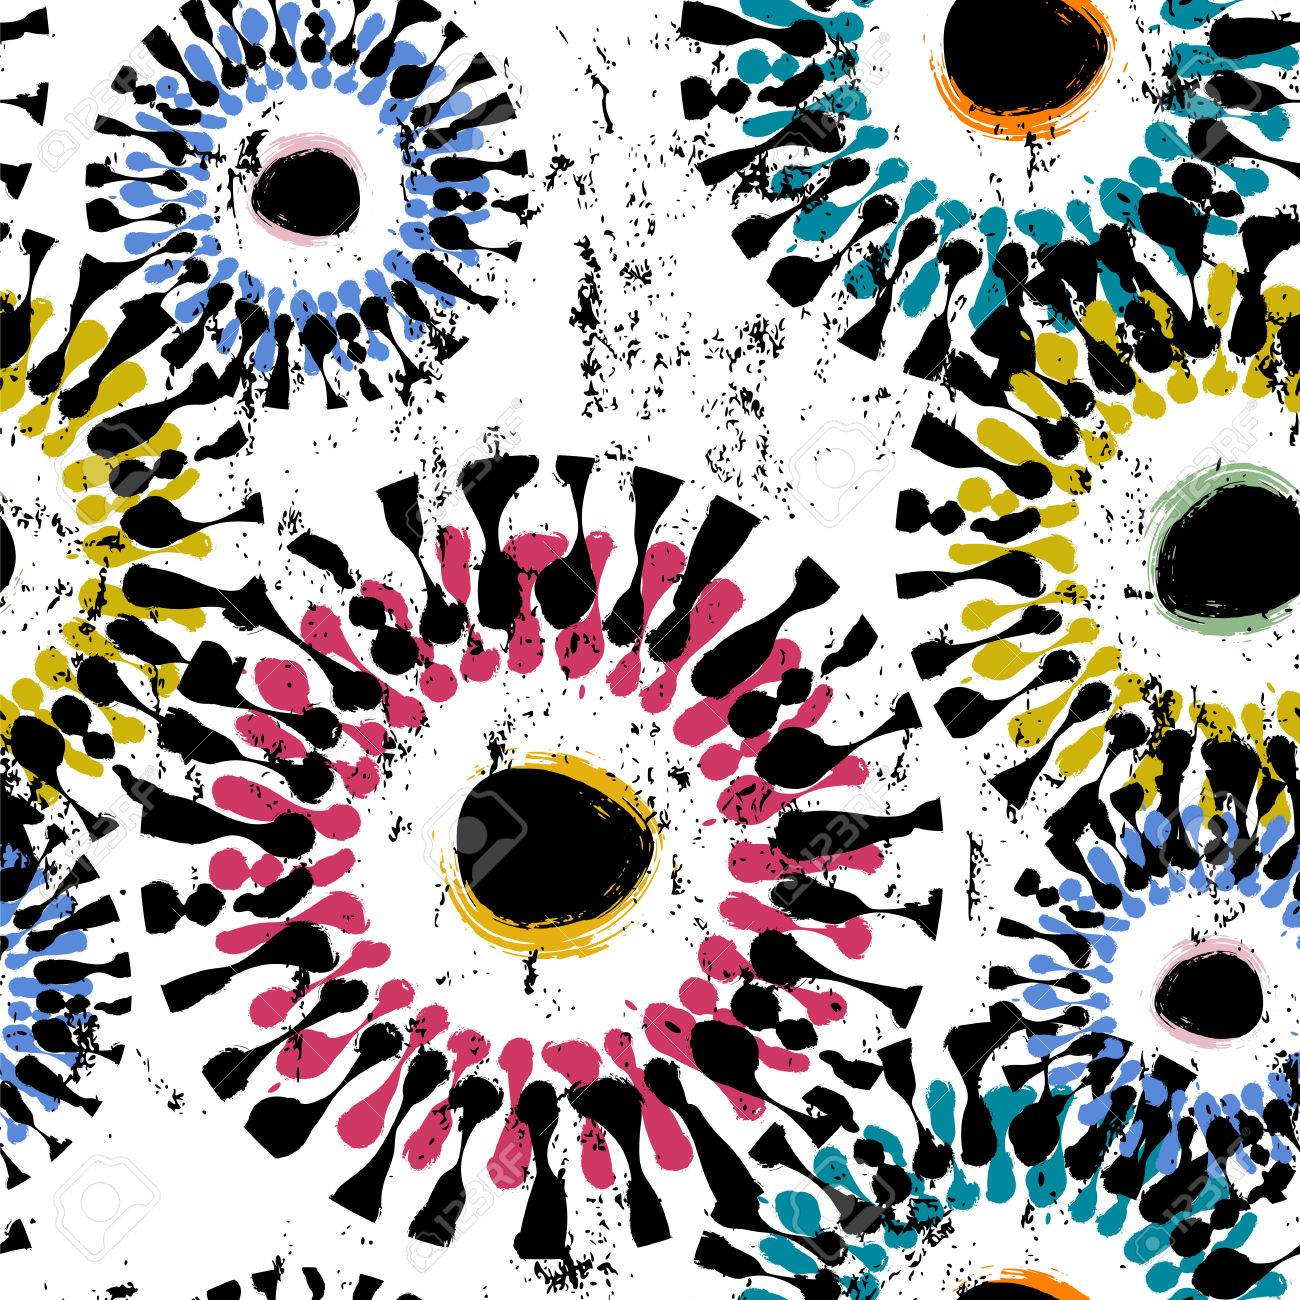 Seamless background pattern, with circles, paint strokes and splashes - 87109768